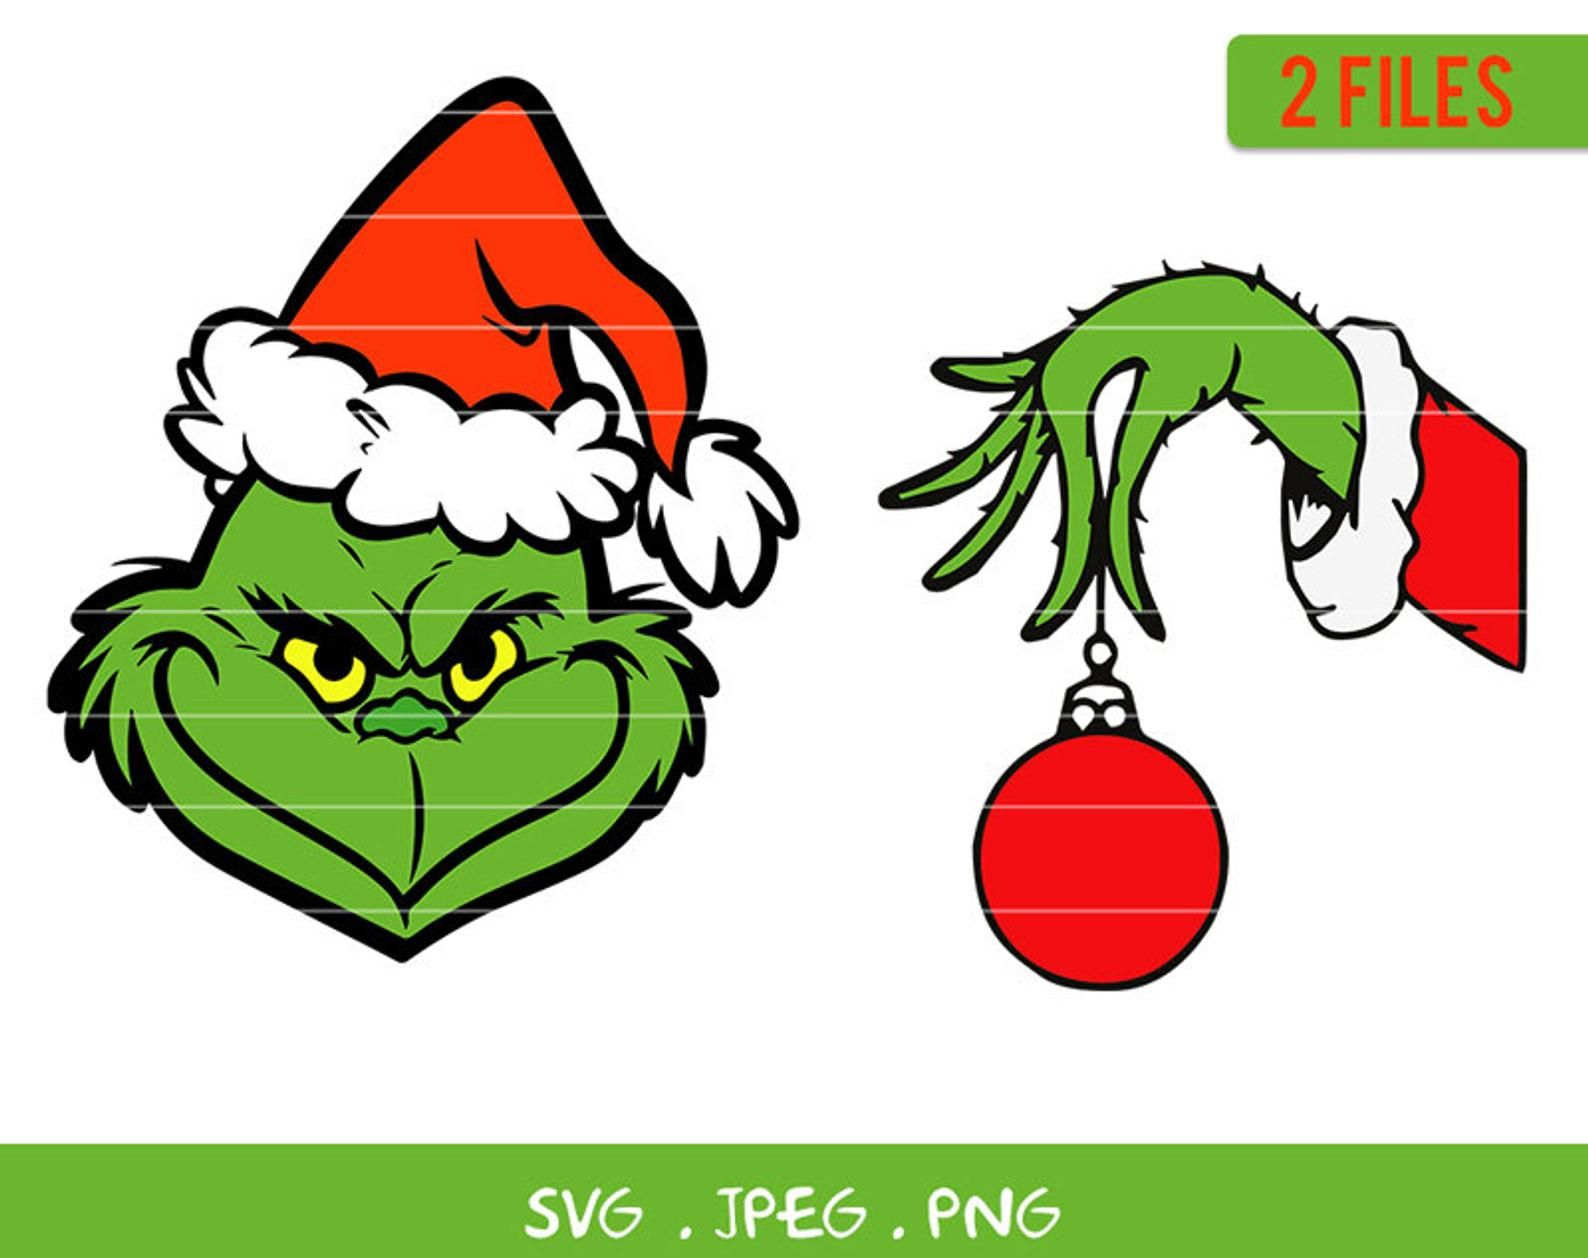 Christmas Grinch Face Svg Bundle Grinch Hand Christmas Etsy Grinch Face Svg Grinch Hands Grinch Christmas Decorations